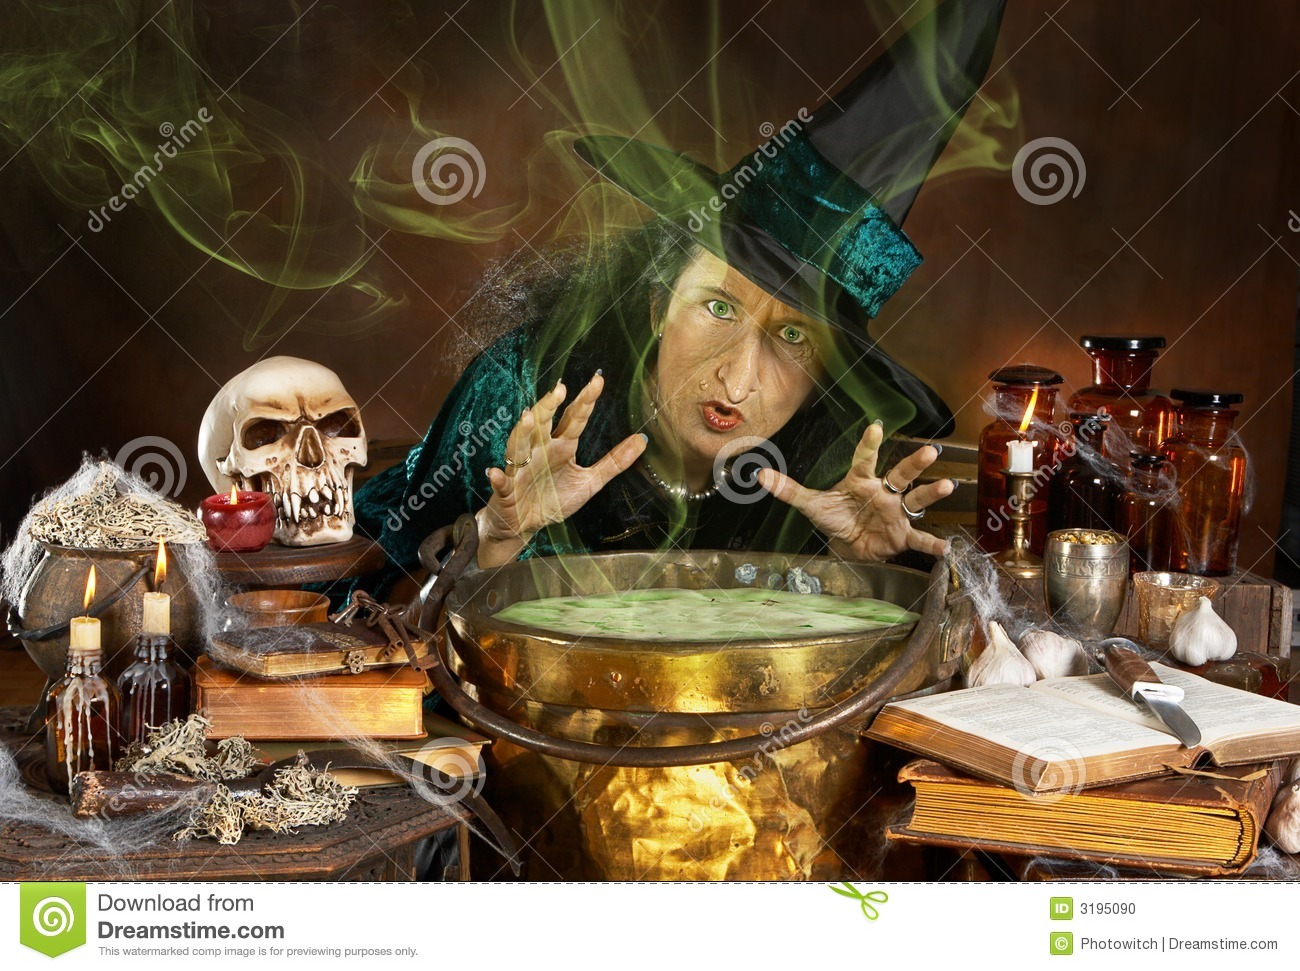 3195090 Stock Ugly - Witch Image: Photo